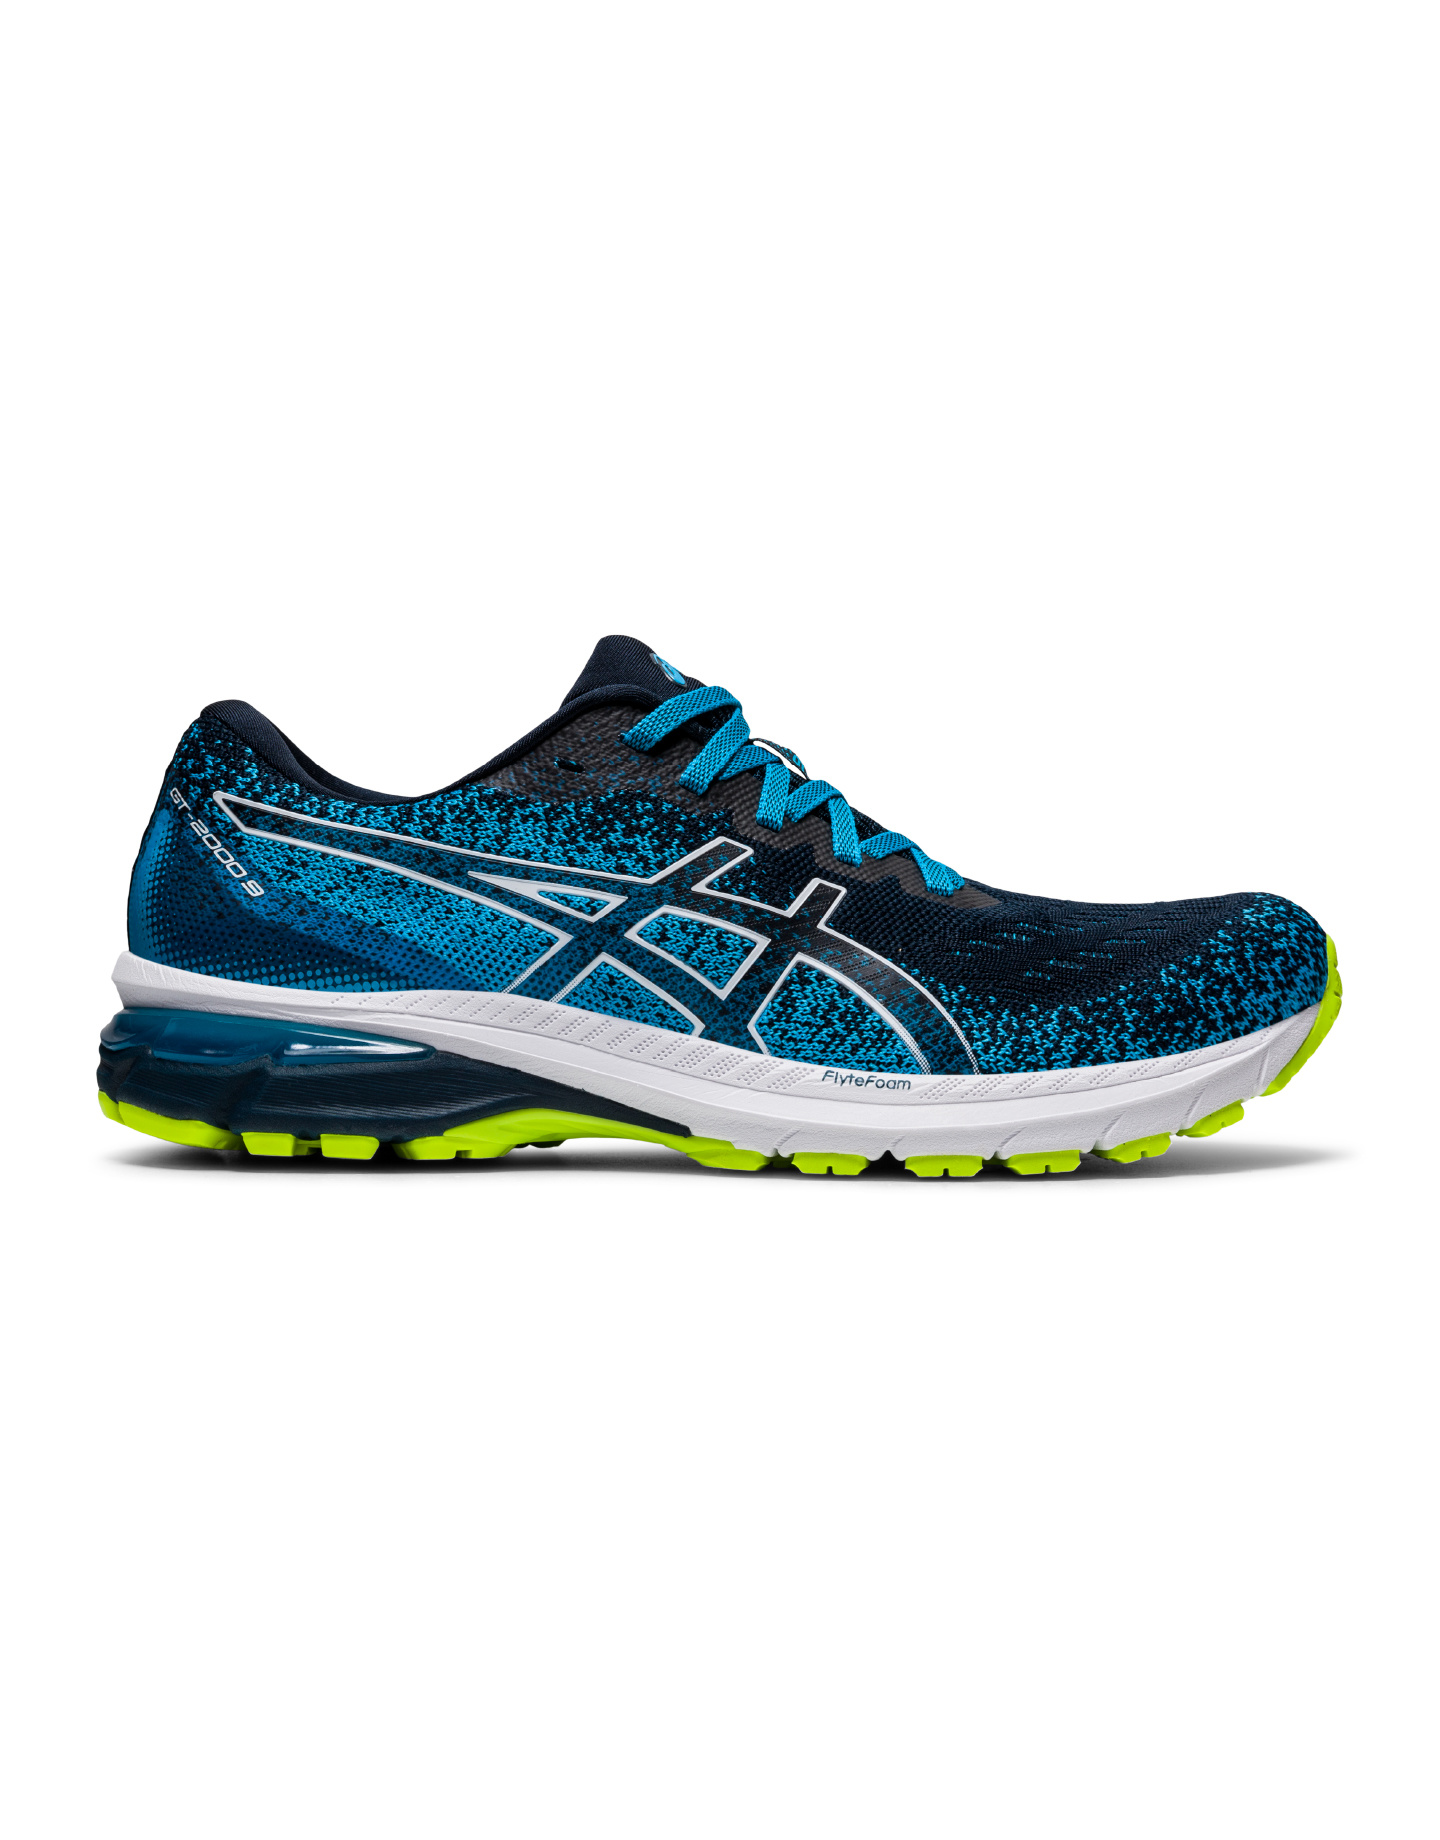 Asics Asics GT-2000 9 Knit - Men